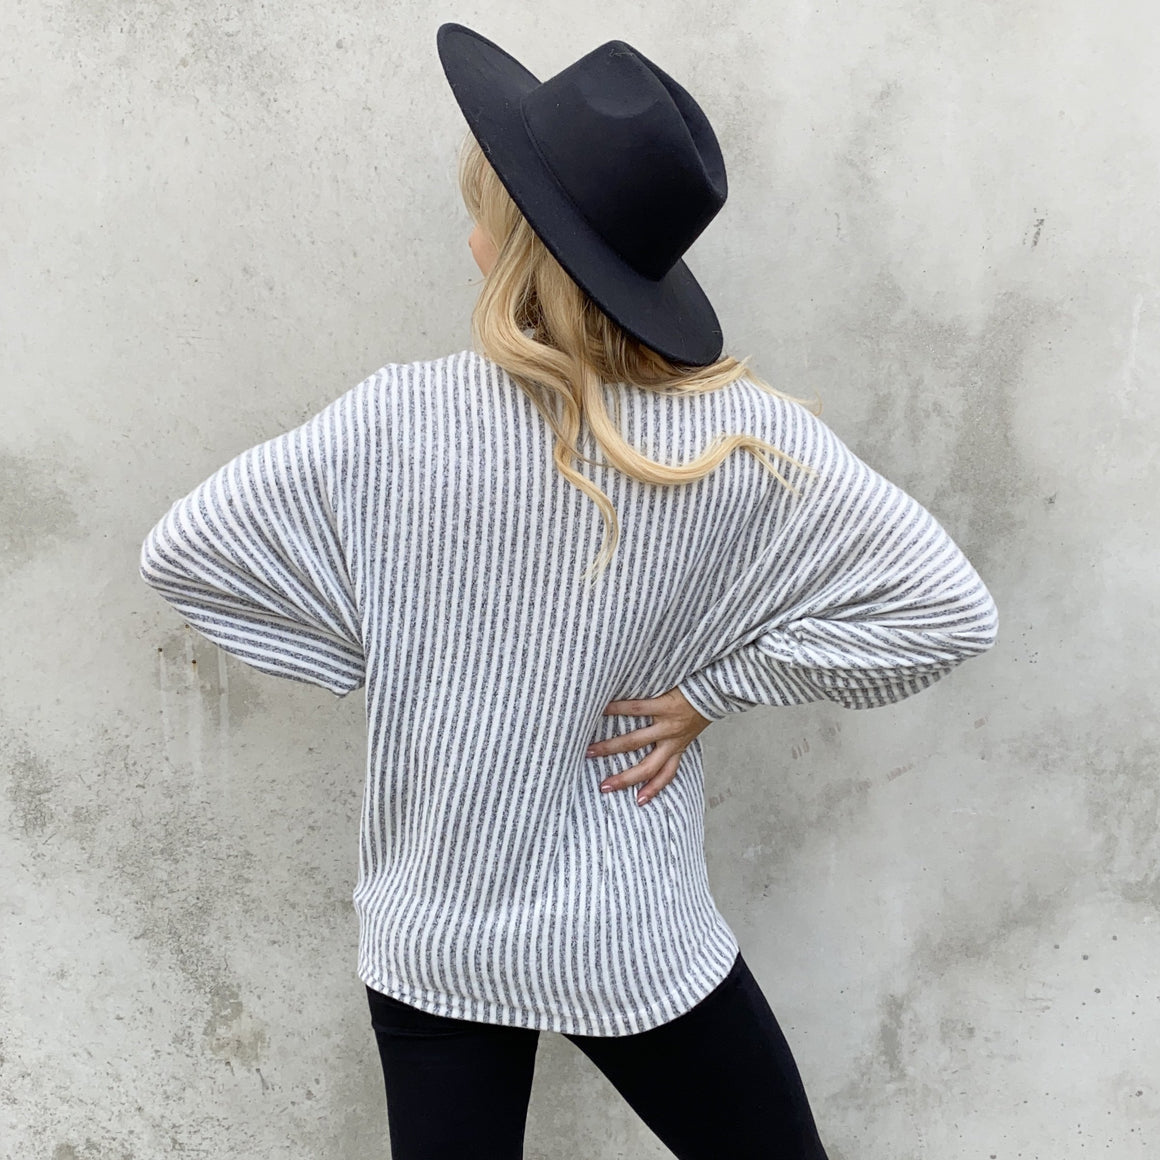 Grey & White Fleece Stripe Sweater Top - Dainty Hooligan